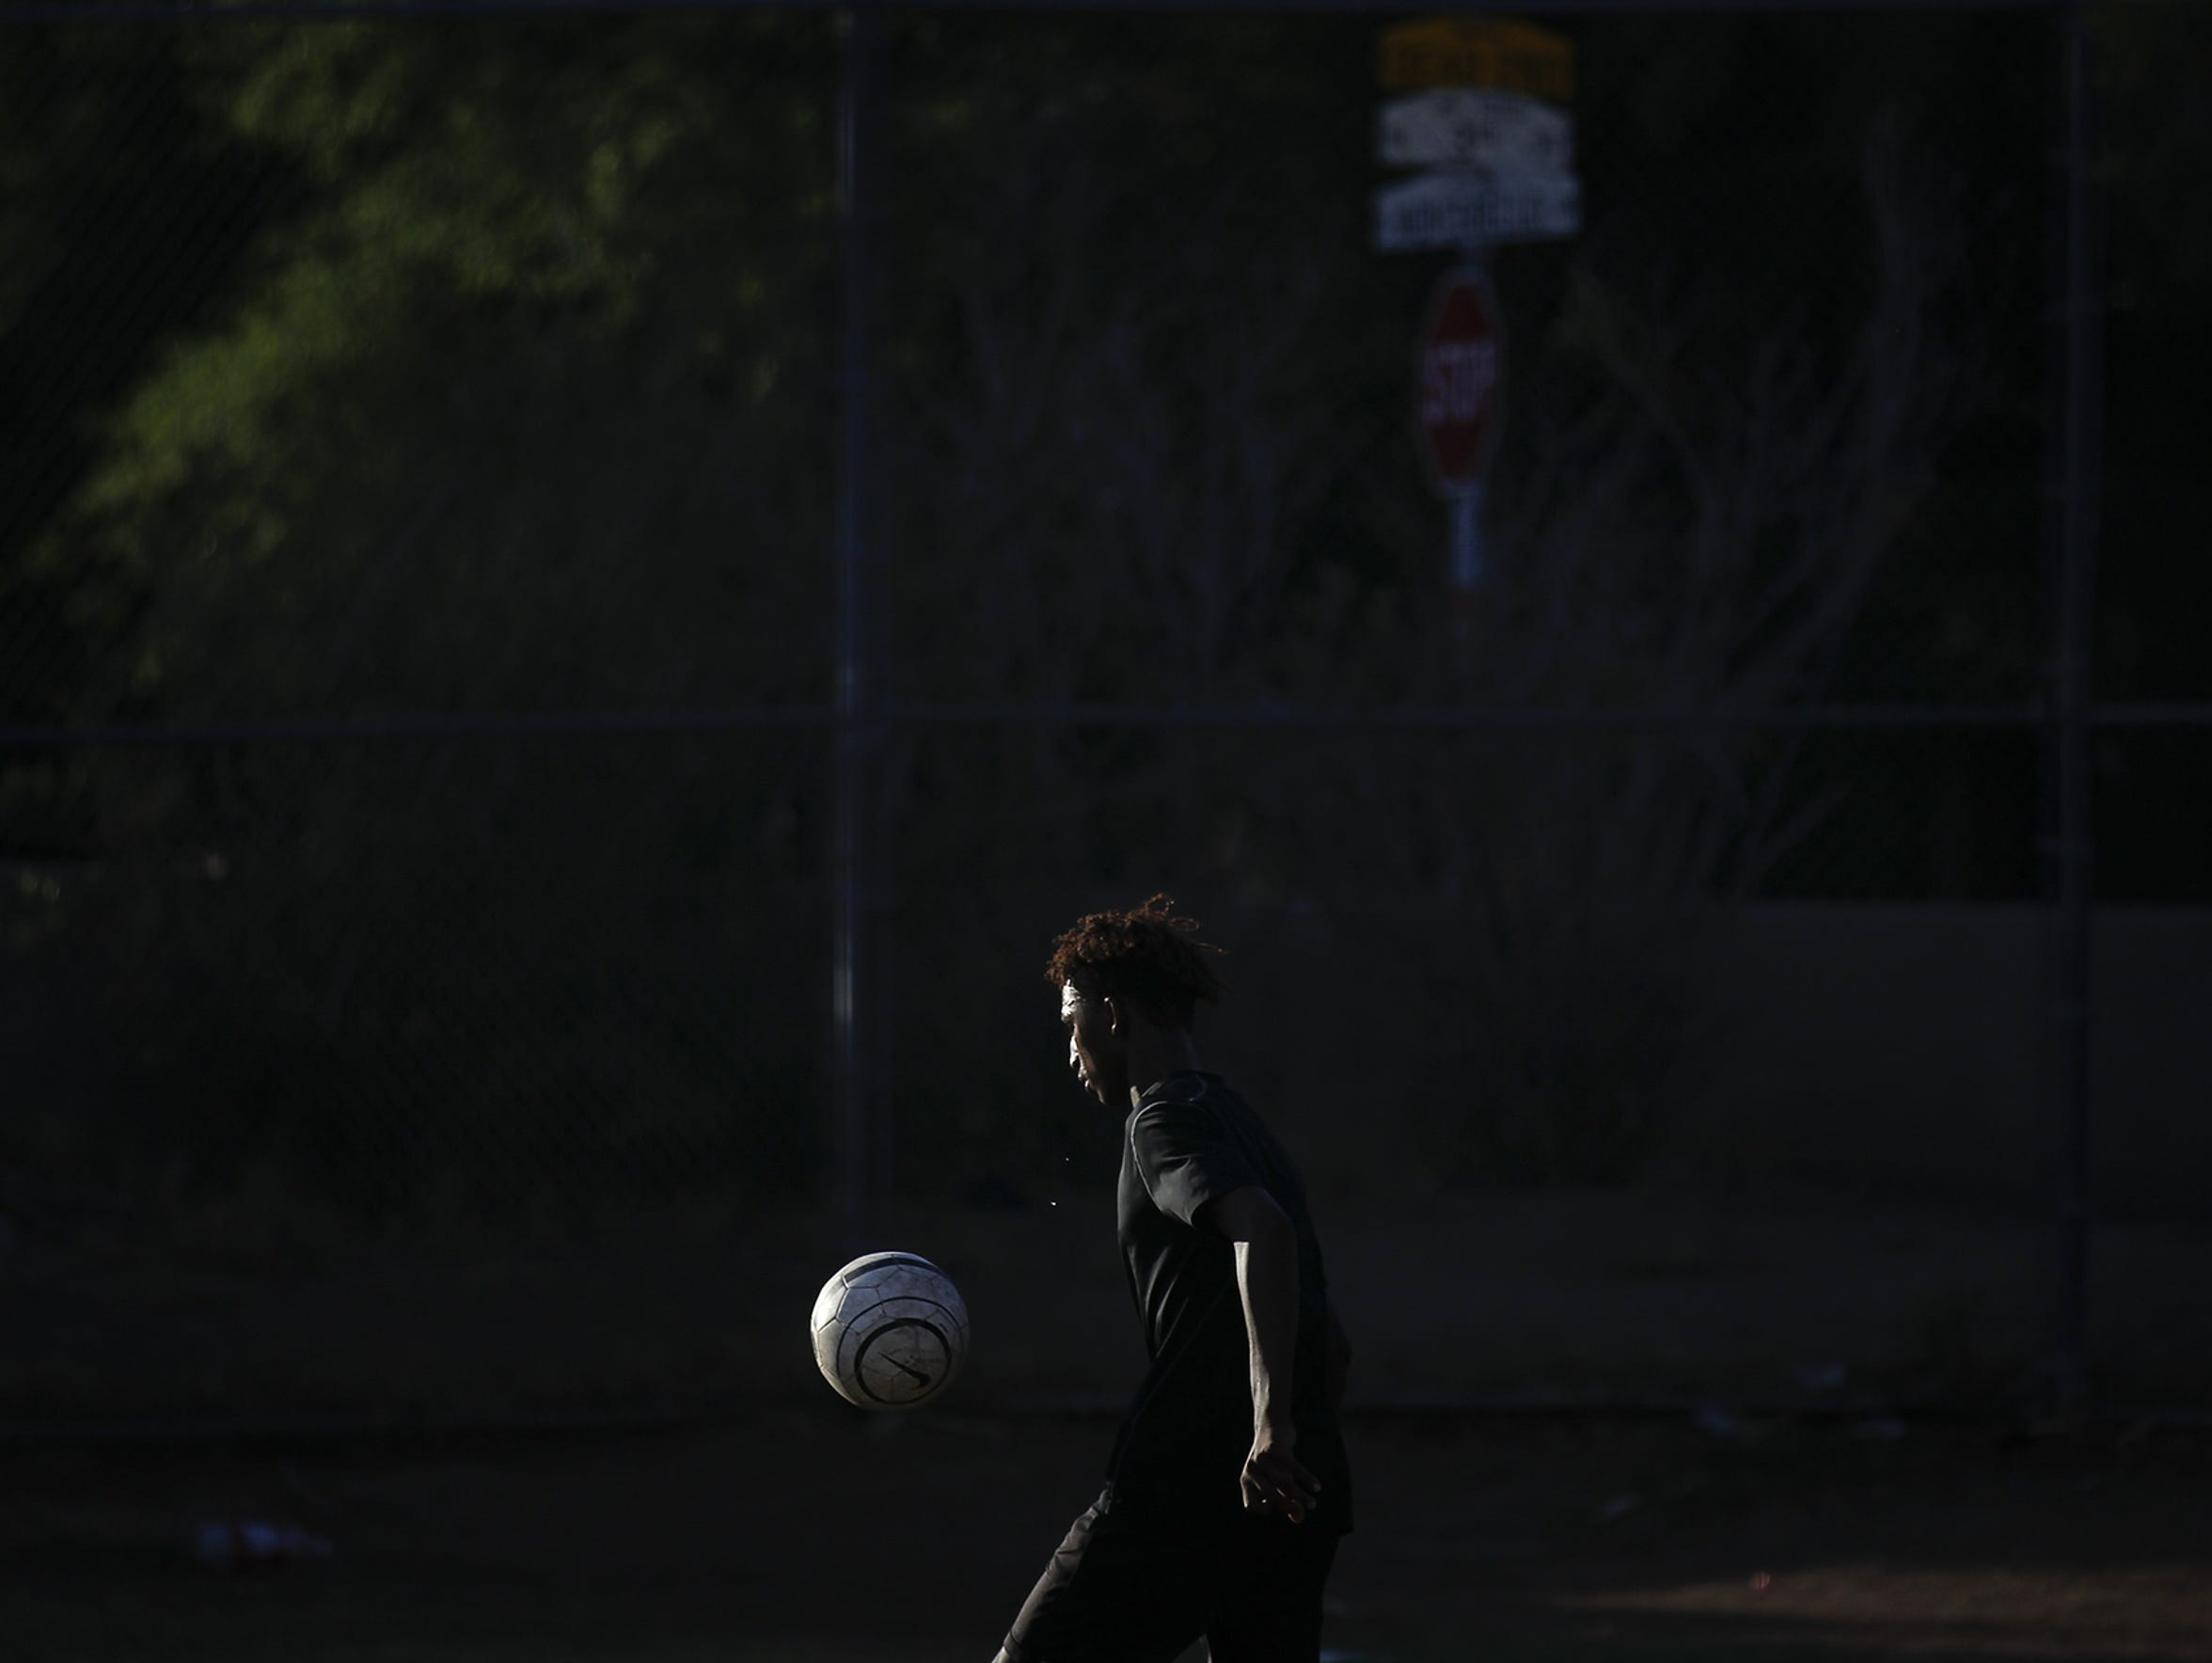 Dawit Ajju practices juggling drills during a morning